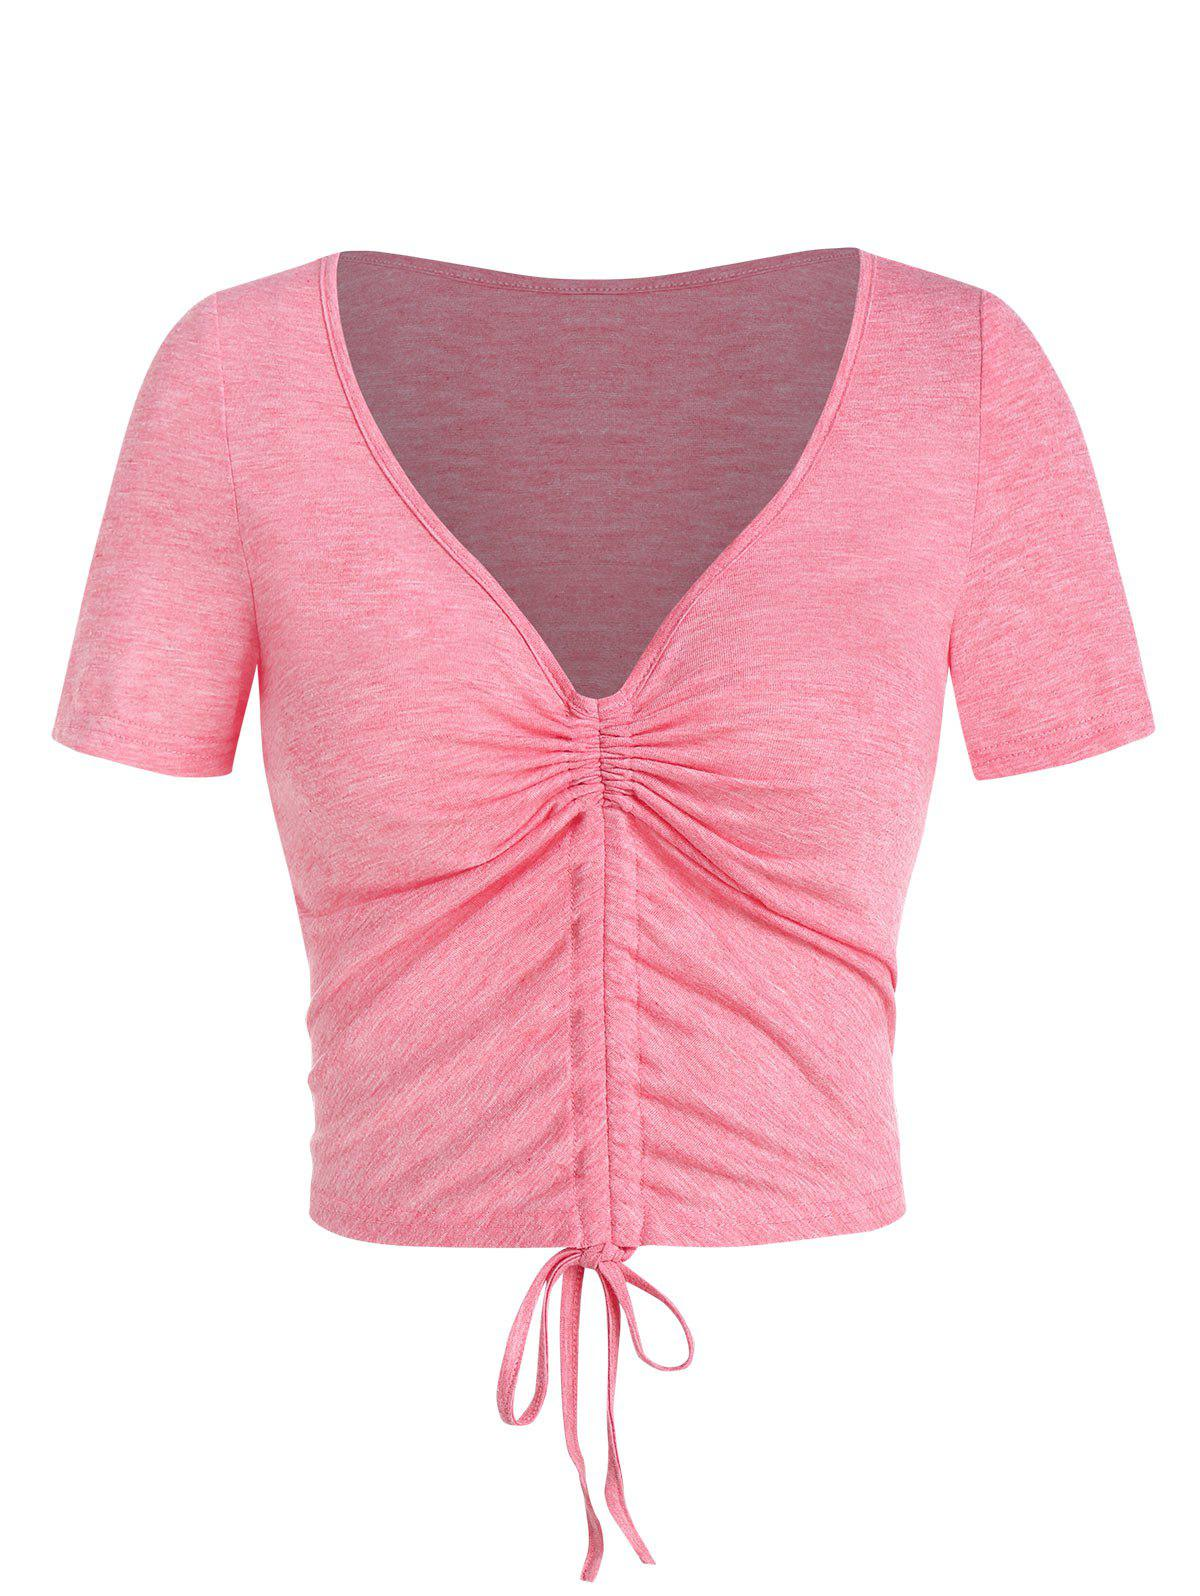 Plunge Neck Heathered Cinched Cropped T-shirt - LIGHT CORAL M